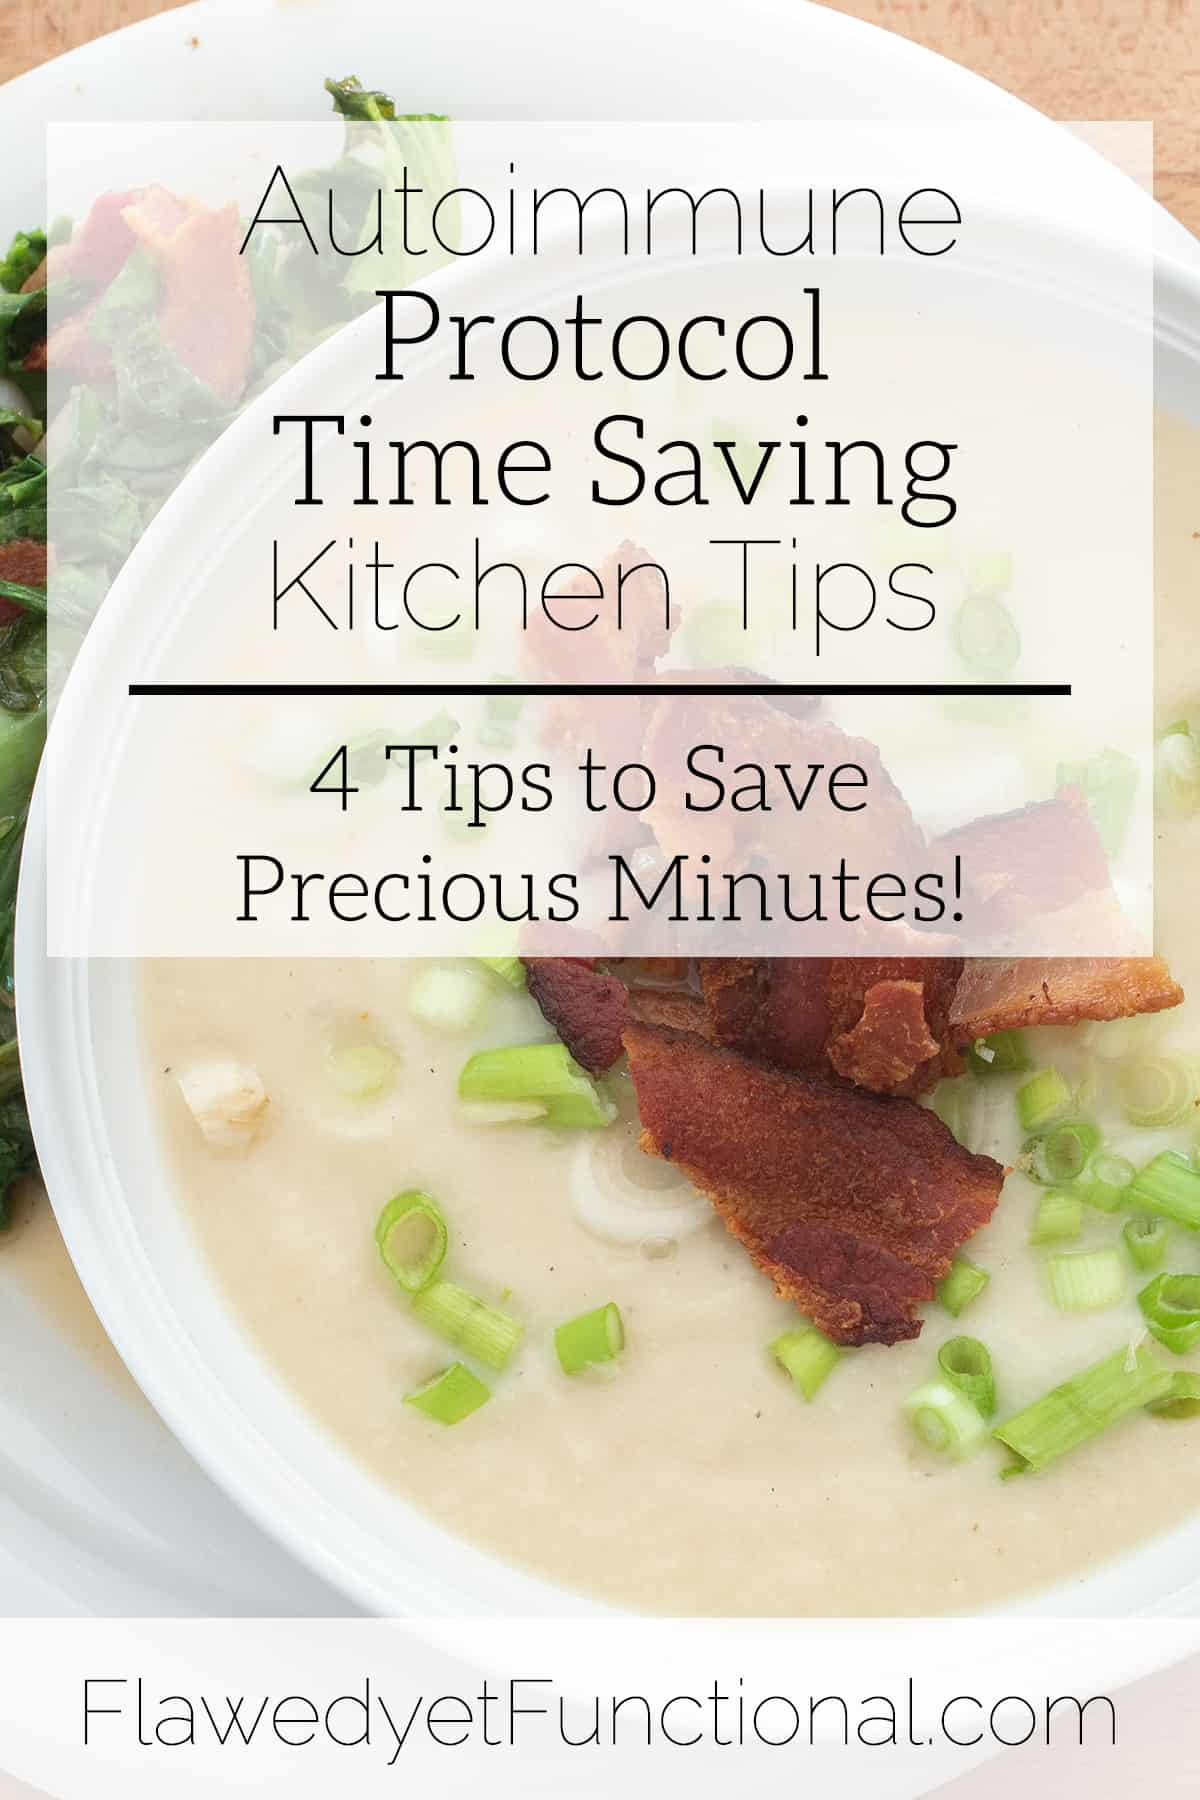 Save Time in the Kitchen While on the Autoimmune Protocol